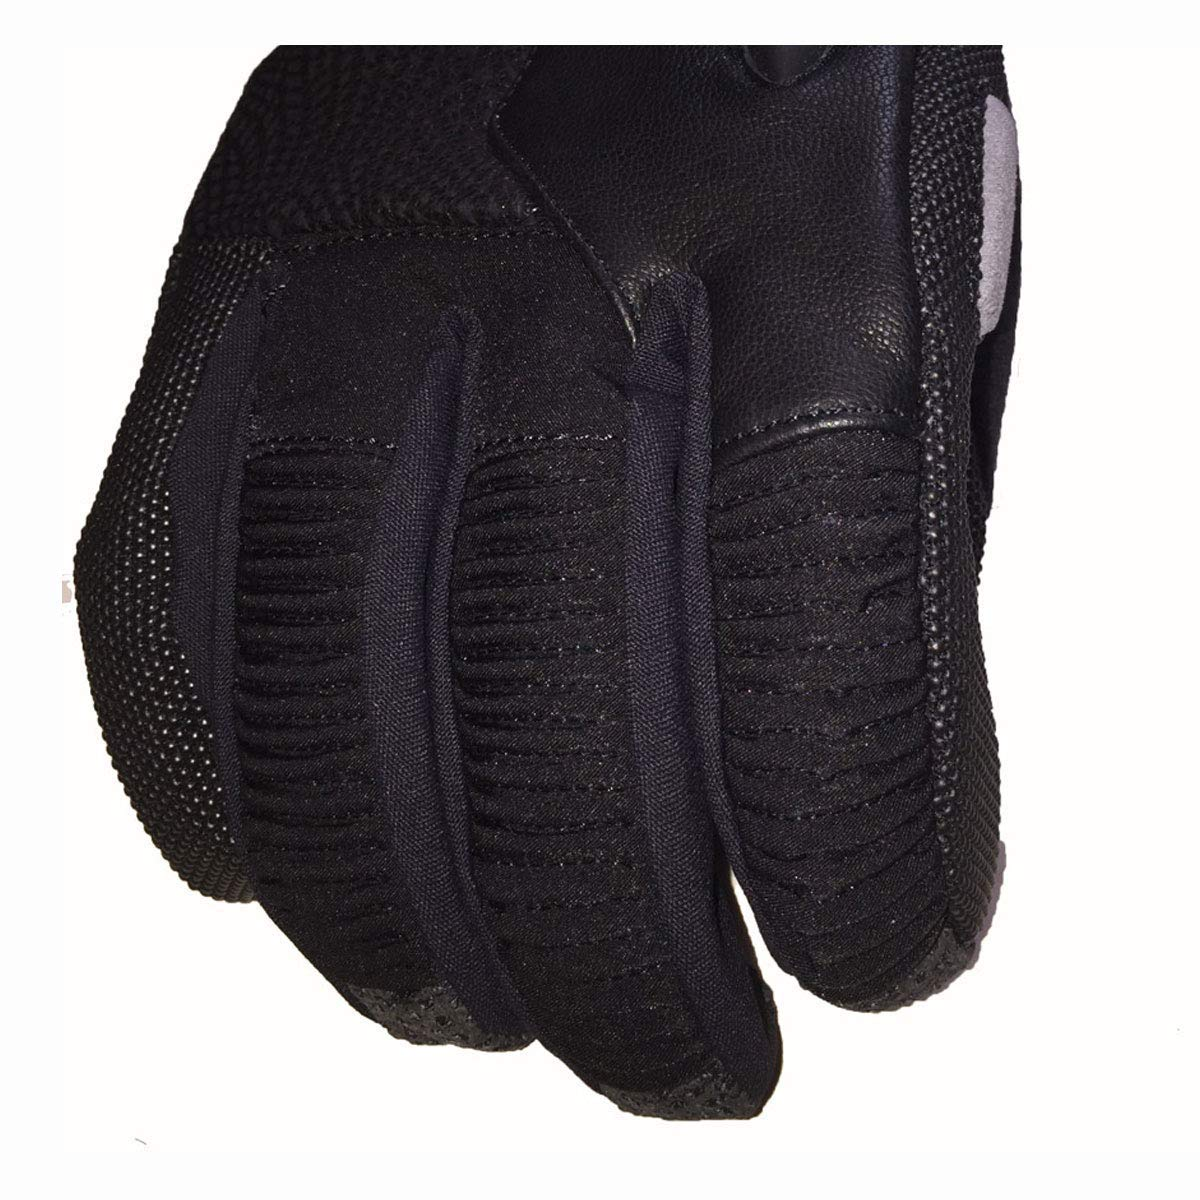 Level Super Pipe Snowboard Gloves with Advanced Wrist Protection